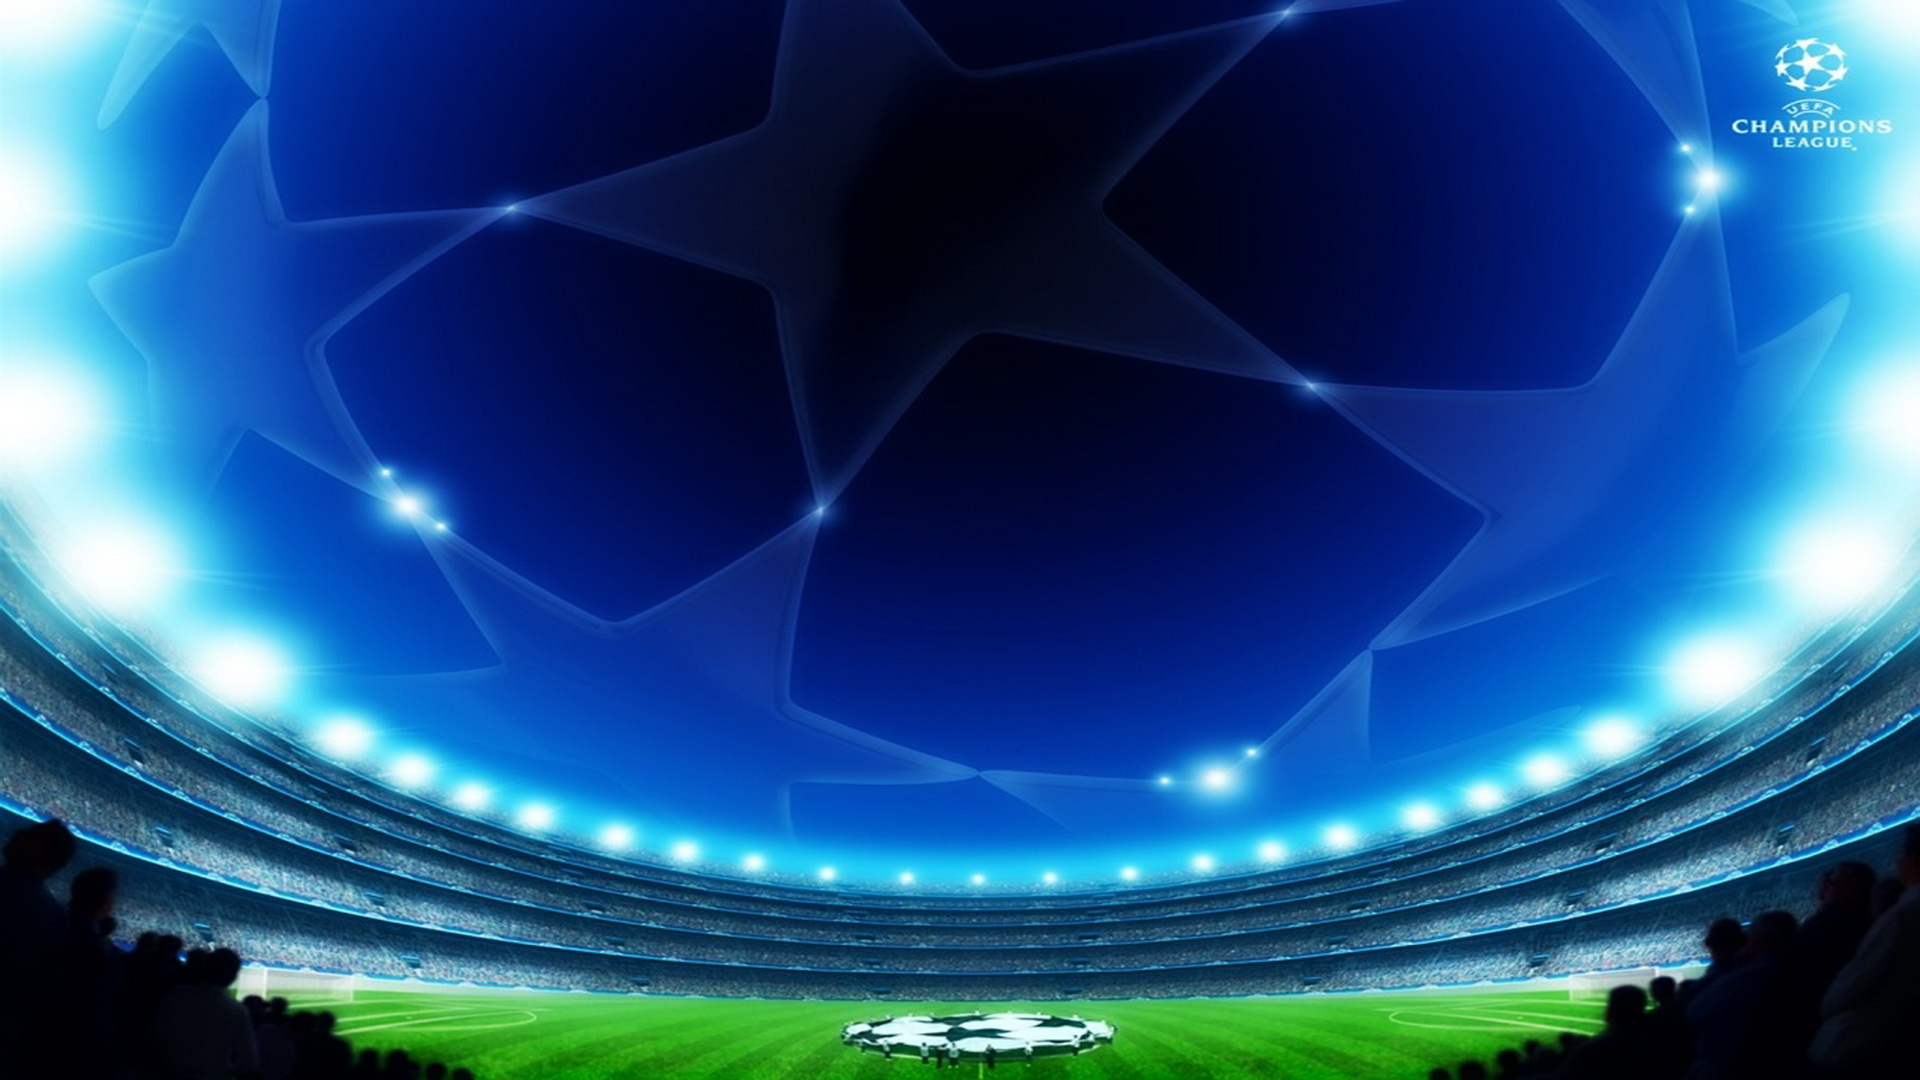 champions league high wallpapers Sport Wallpaper HD Backgrounds 1920x1080